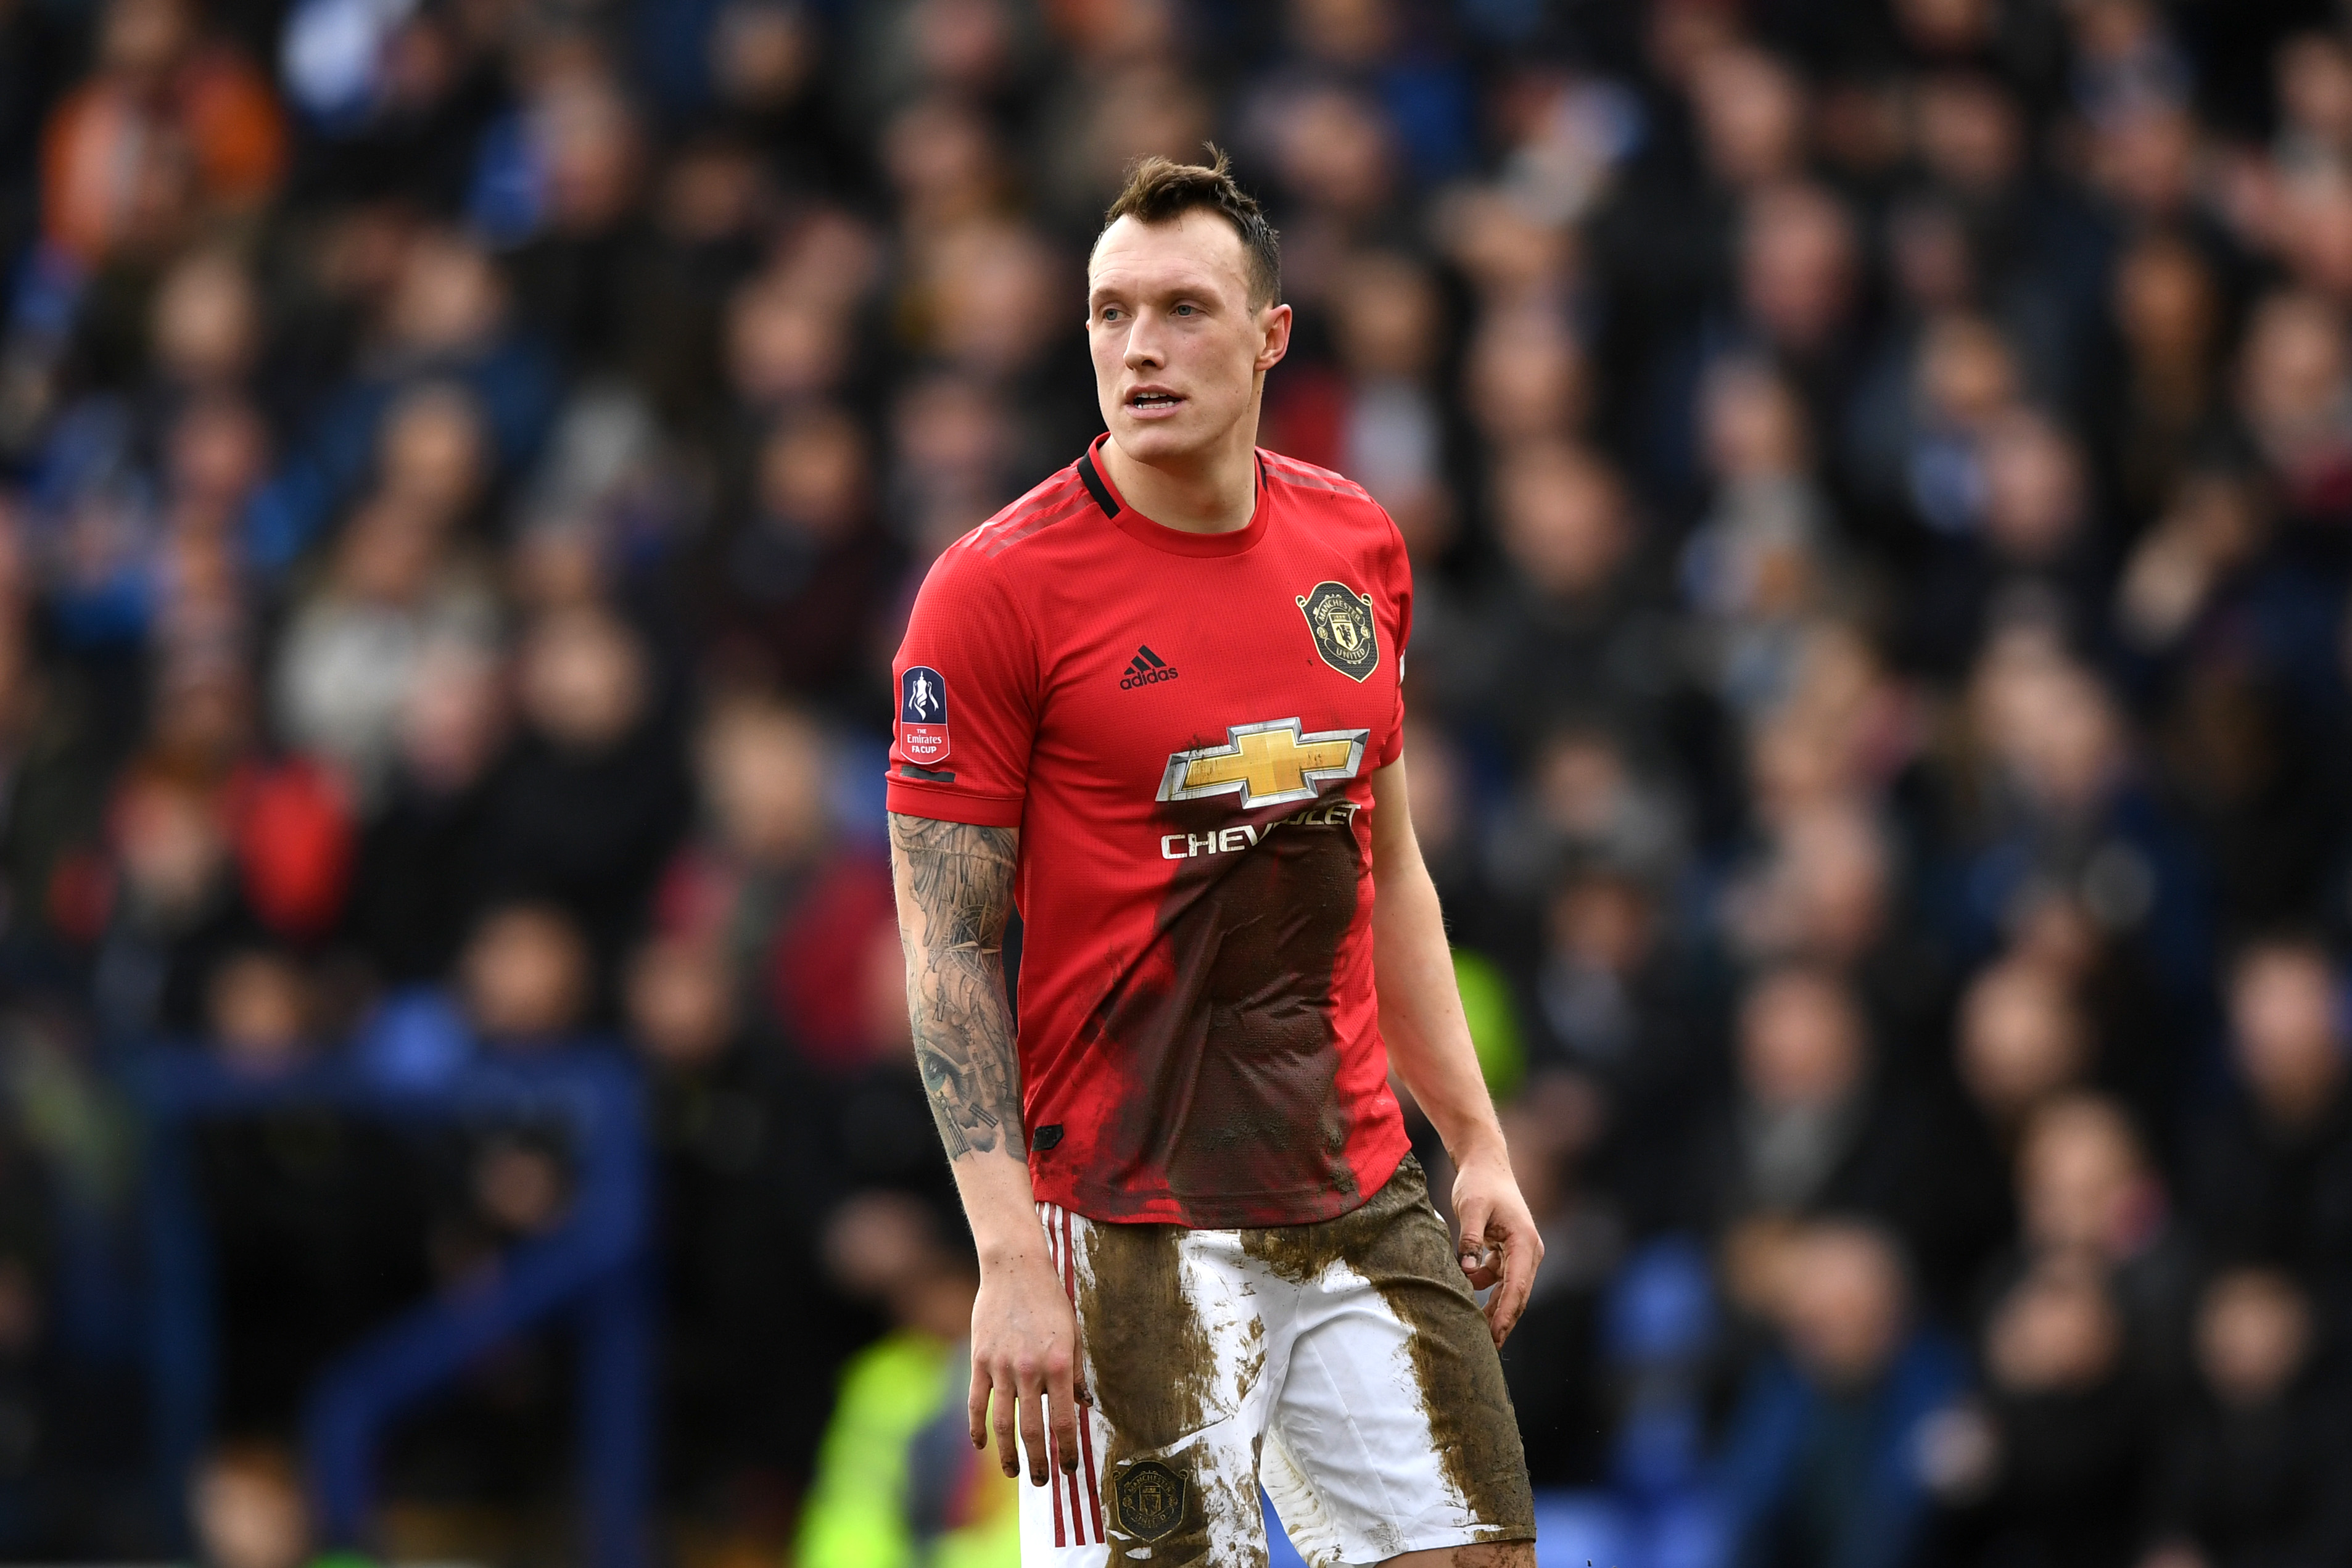 Manchester United set to demand £20m for Jones in January (Man United's Phil Jones is seen in the photo)